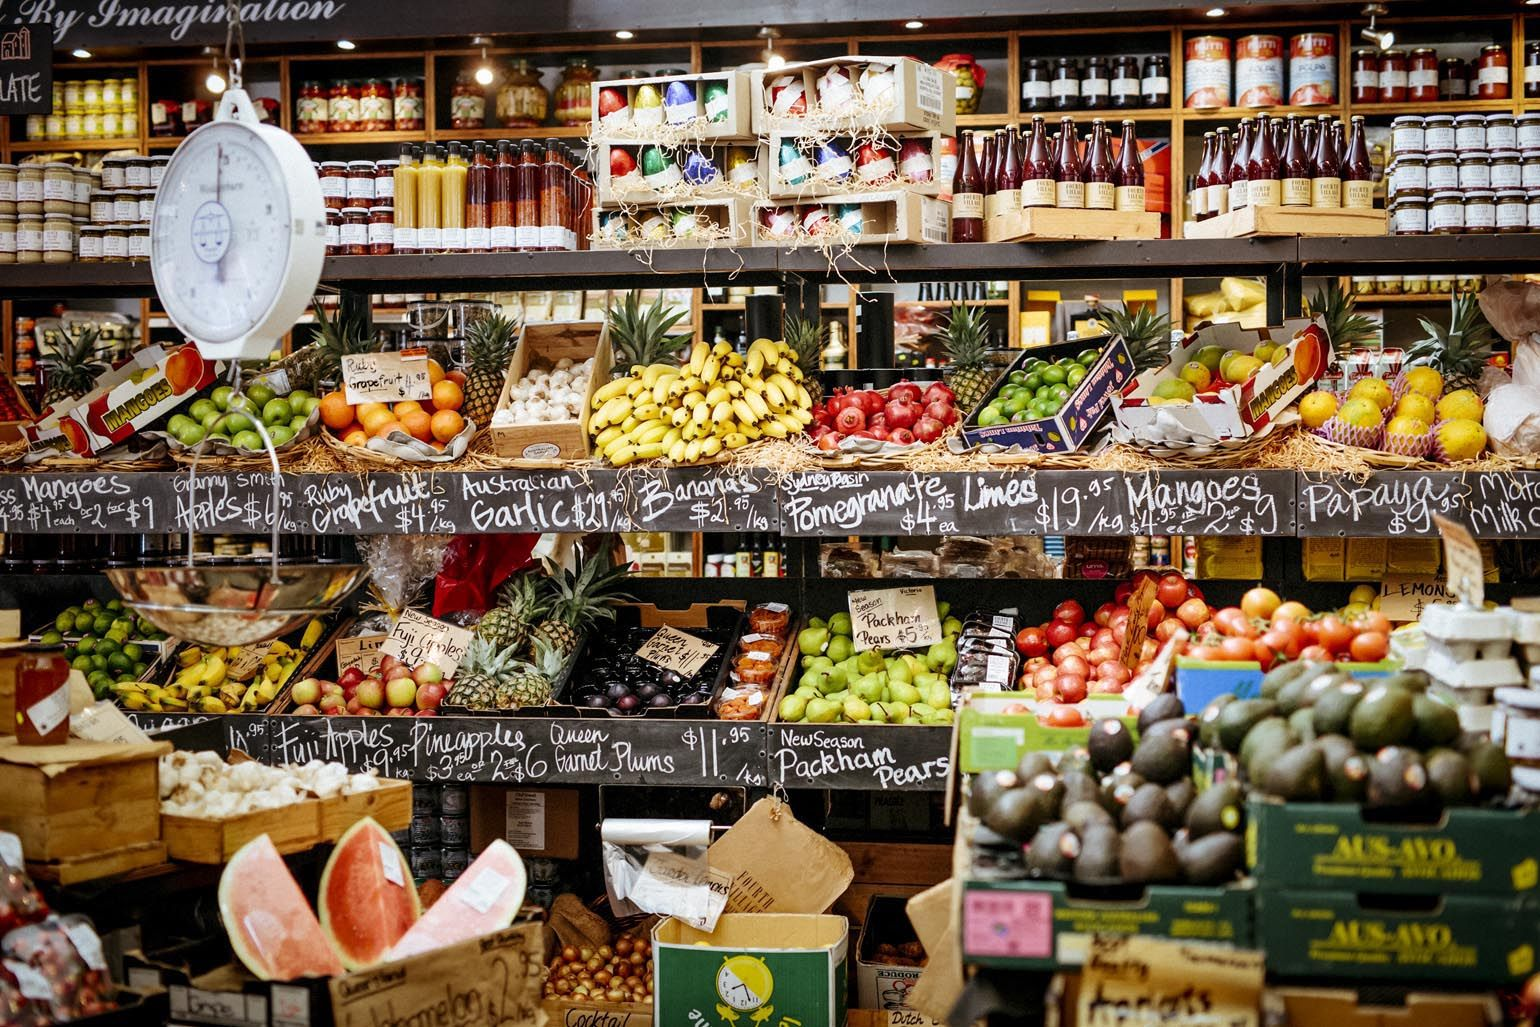 The 30 Best Grocery Stores in Paris | Grocery store, Grocery, Grocery market